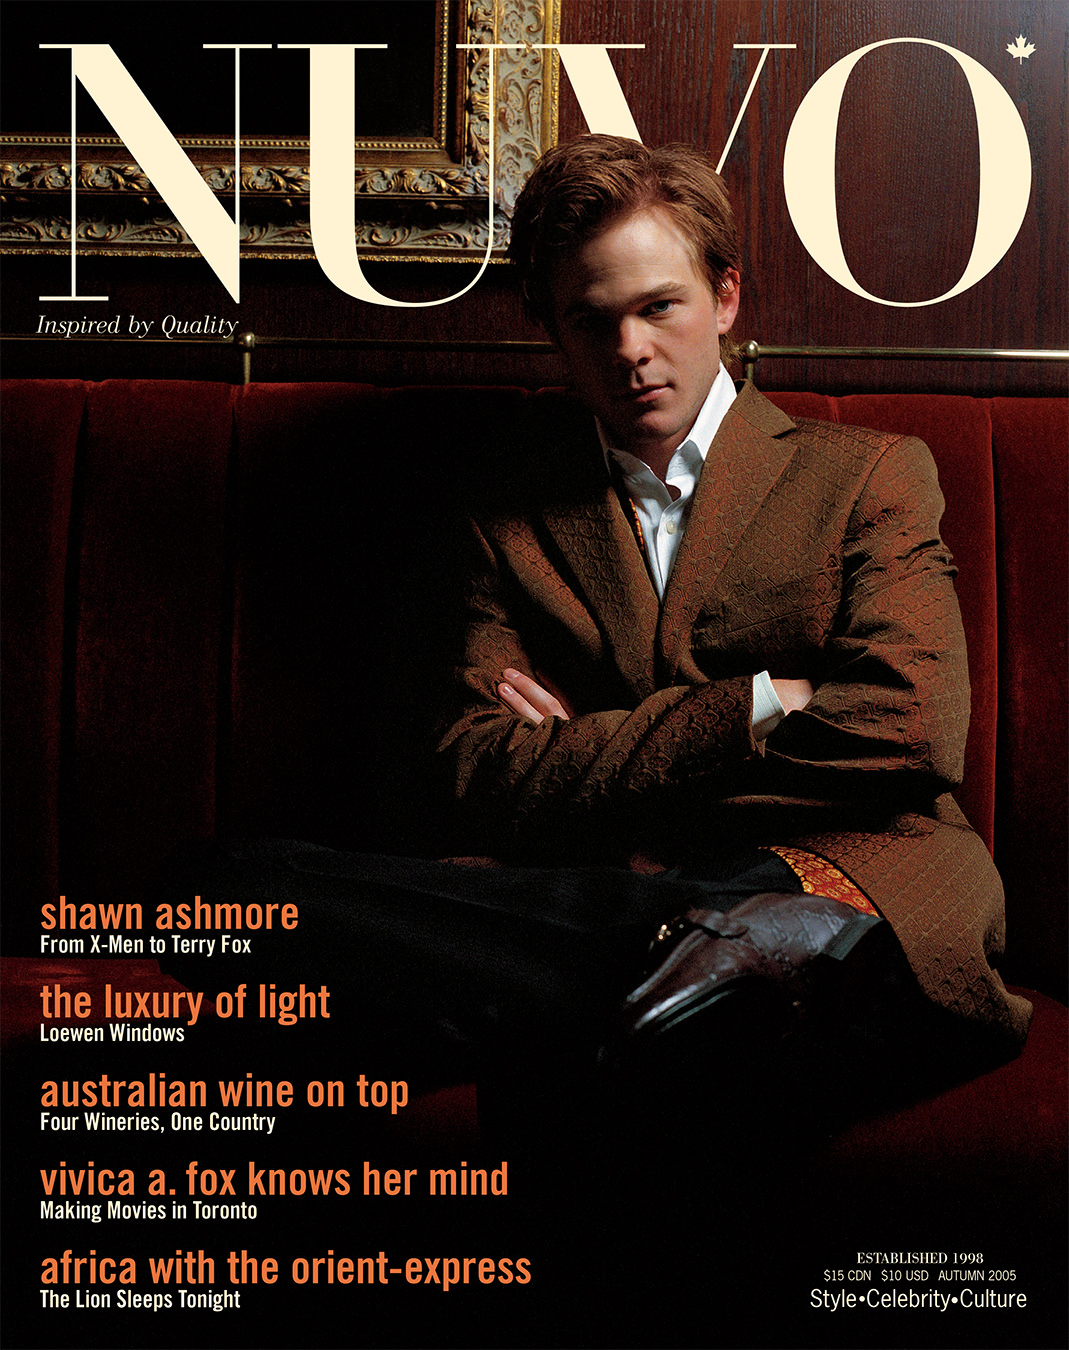 NUVO Magazine Autumn 2005 Cover featuring Shawn Ashmore